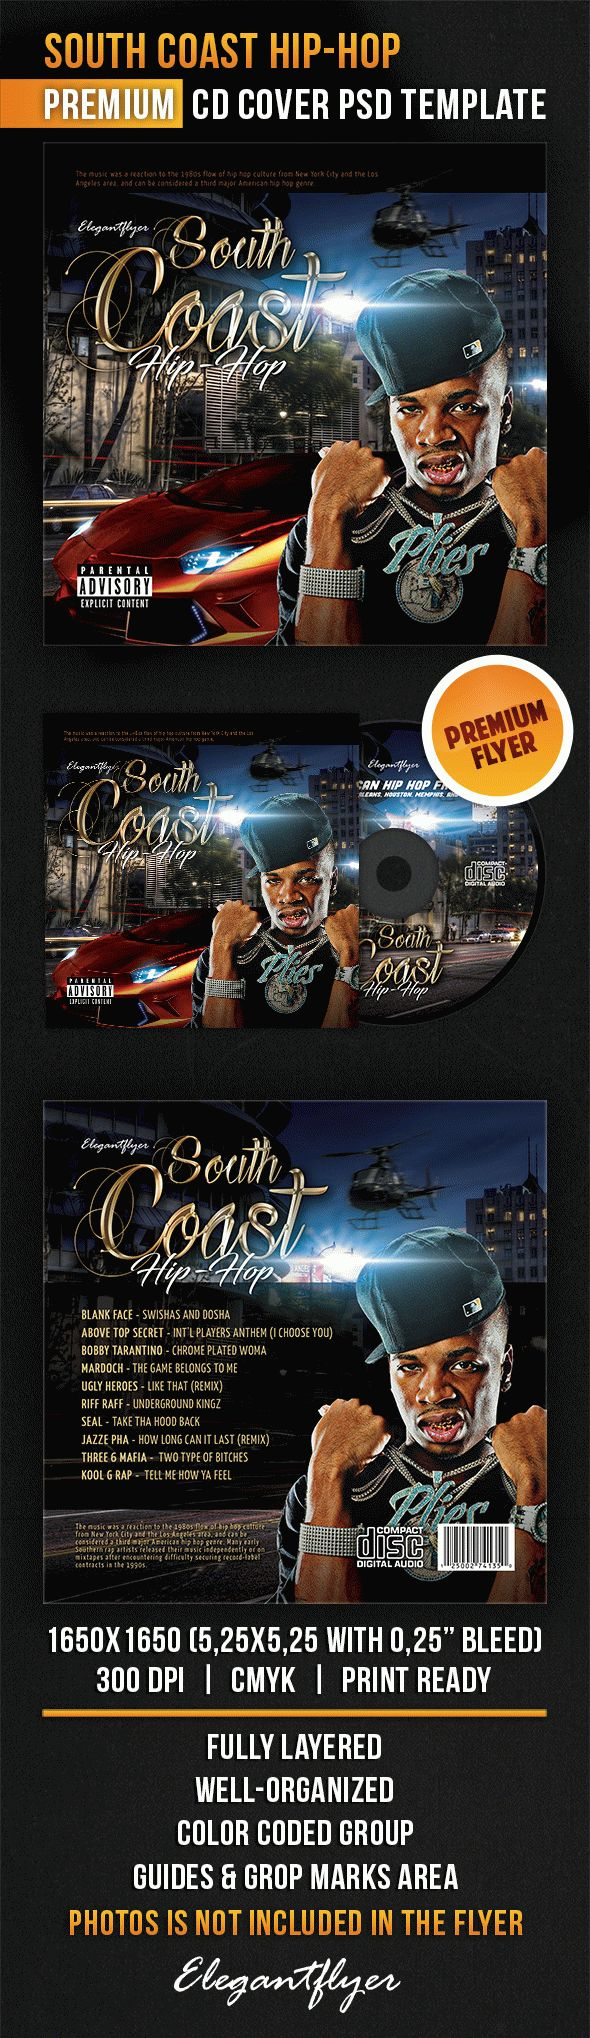 South Coast Hip-Hop – CD Cover PSD Template